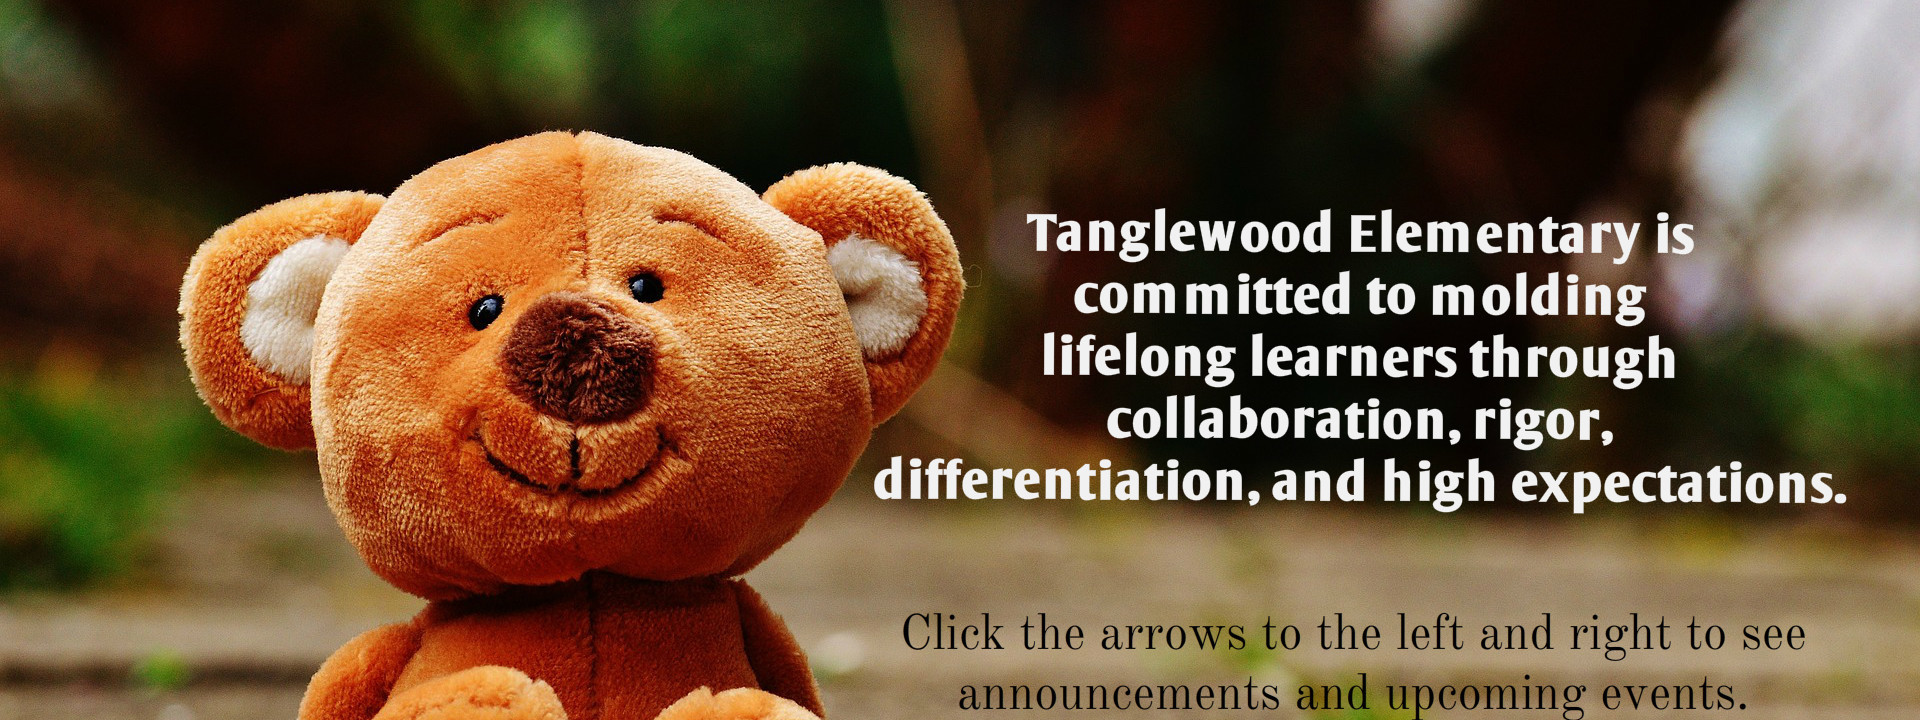 Tanglewood Mission Statement